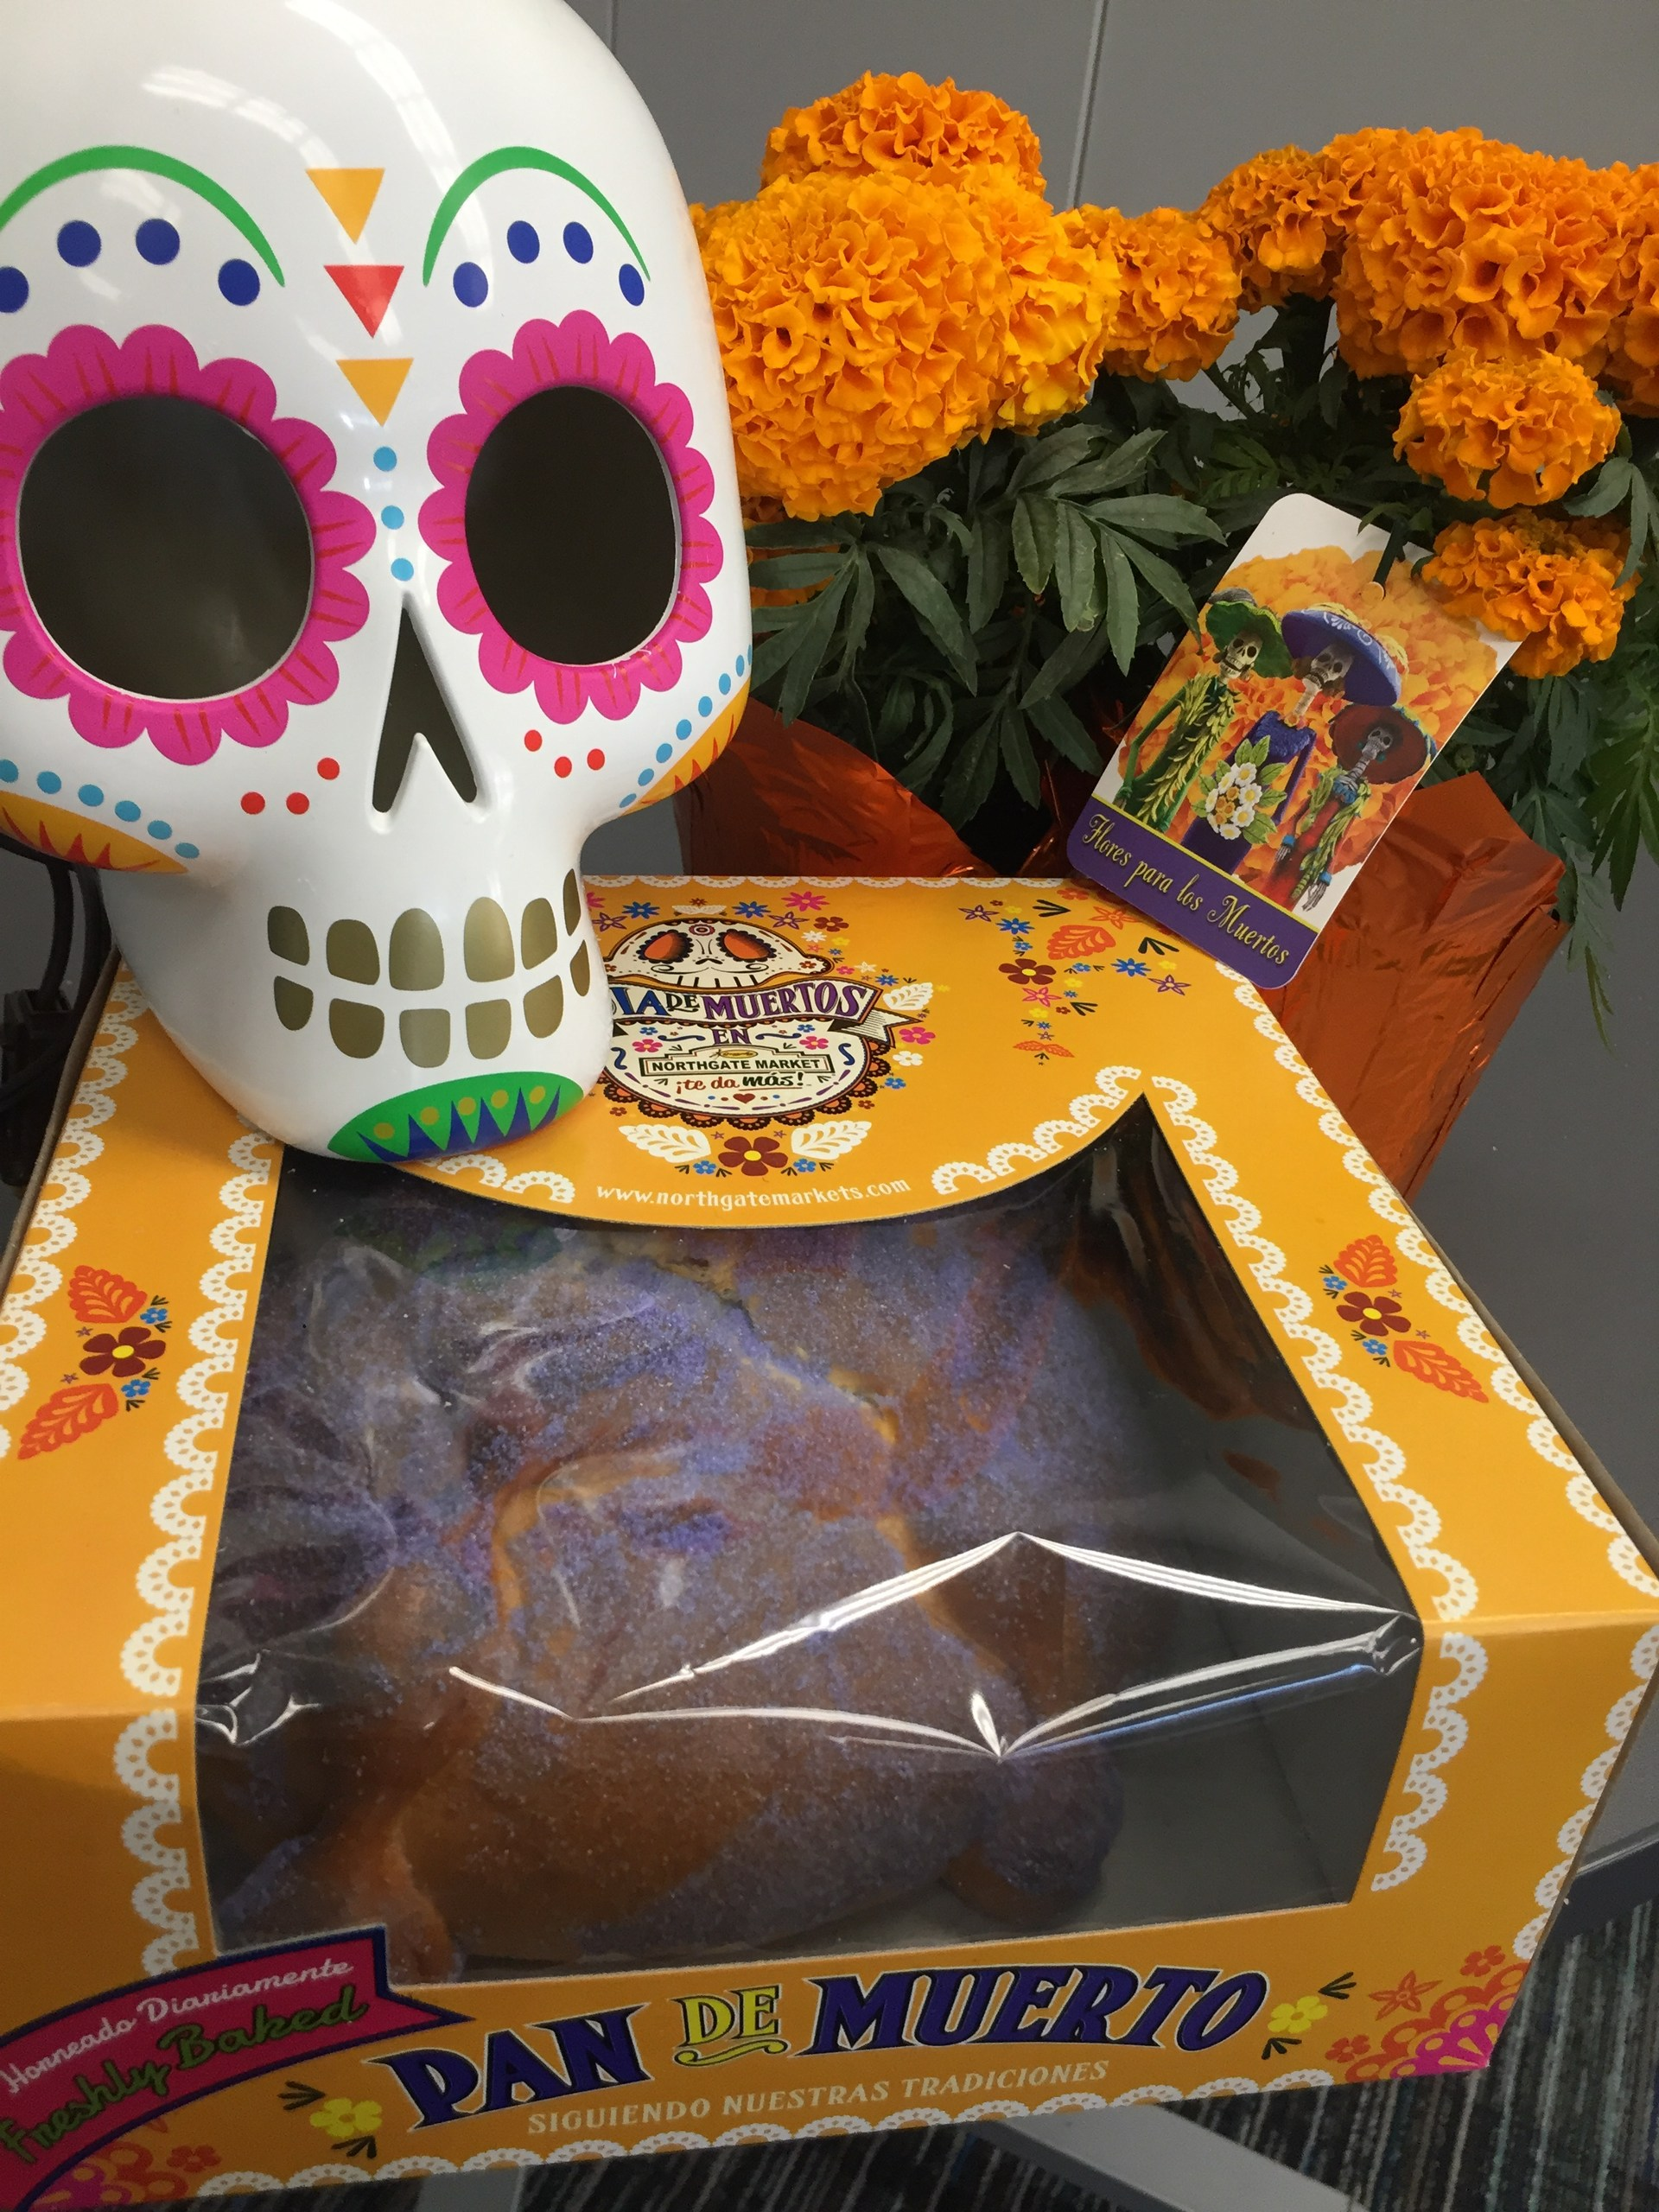 Pan de Muertos. Bread of the Dead.